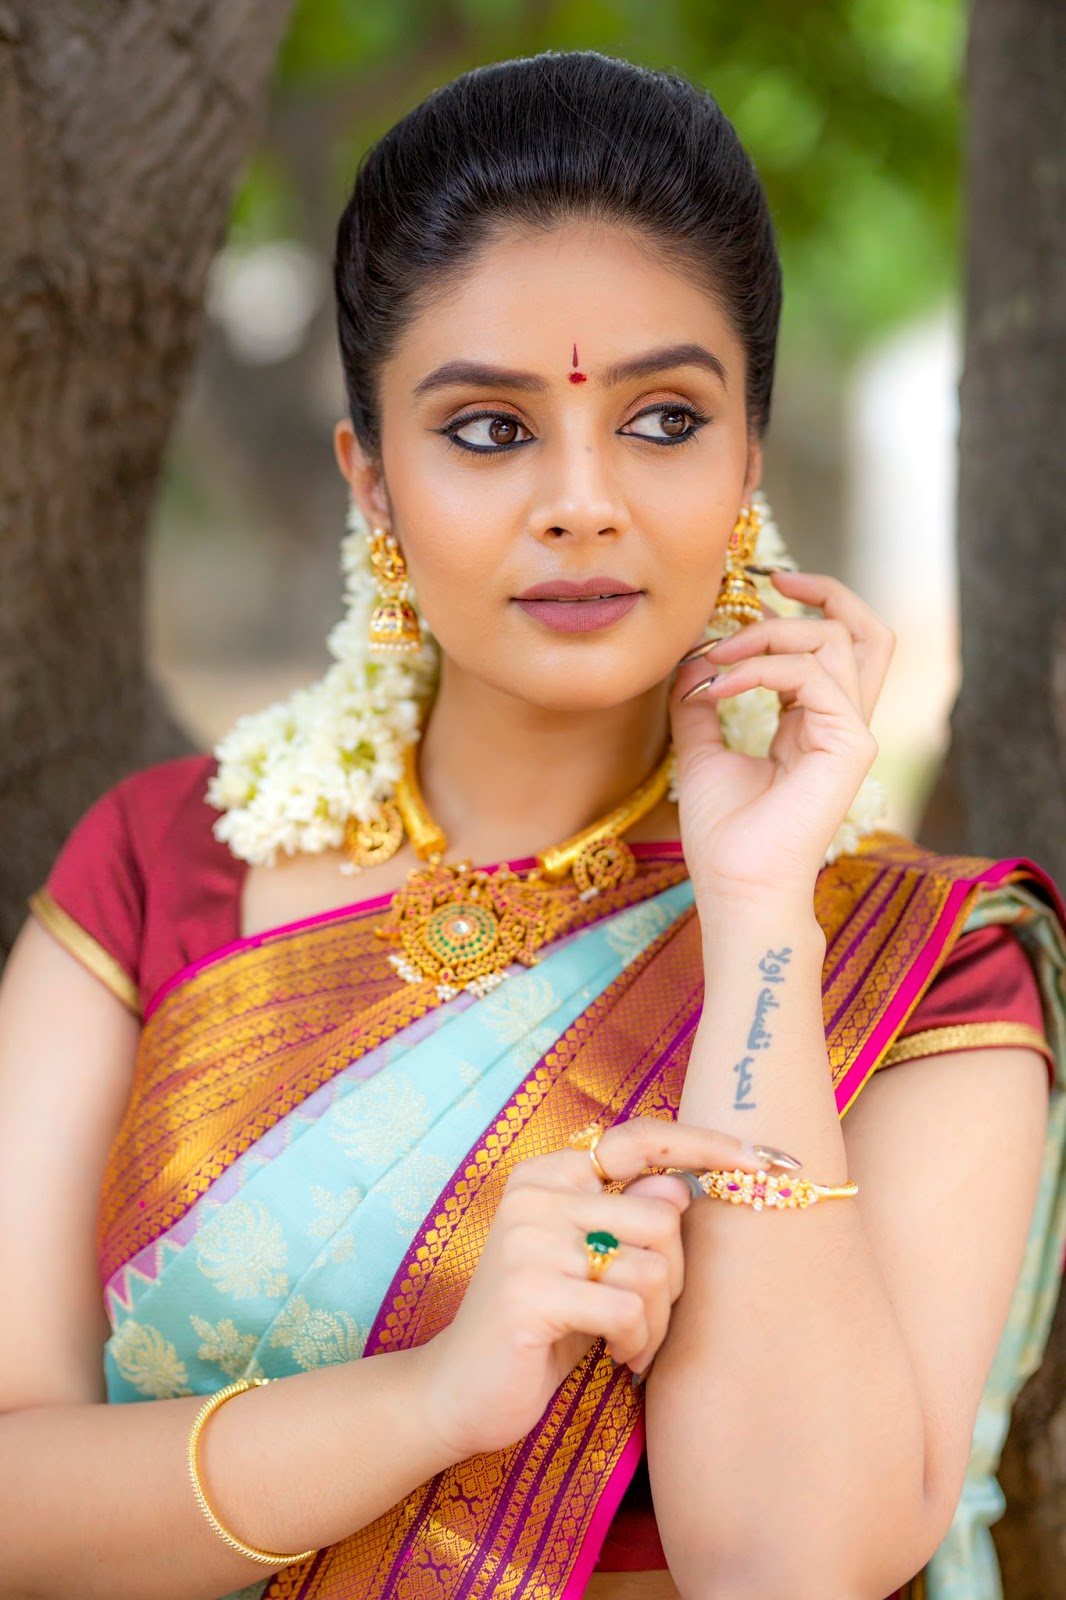 Bollywood Actress Sreemukhi HotPhotos MakeUp BeautyTips Fashion WallPapers Biography Wikipedia MoviesList VideoSongs Photoshoots